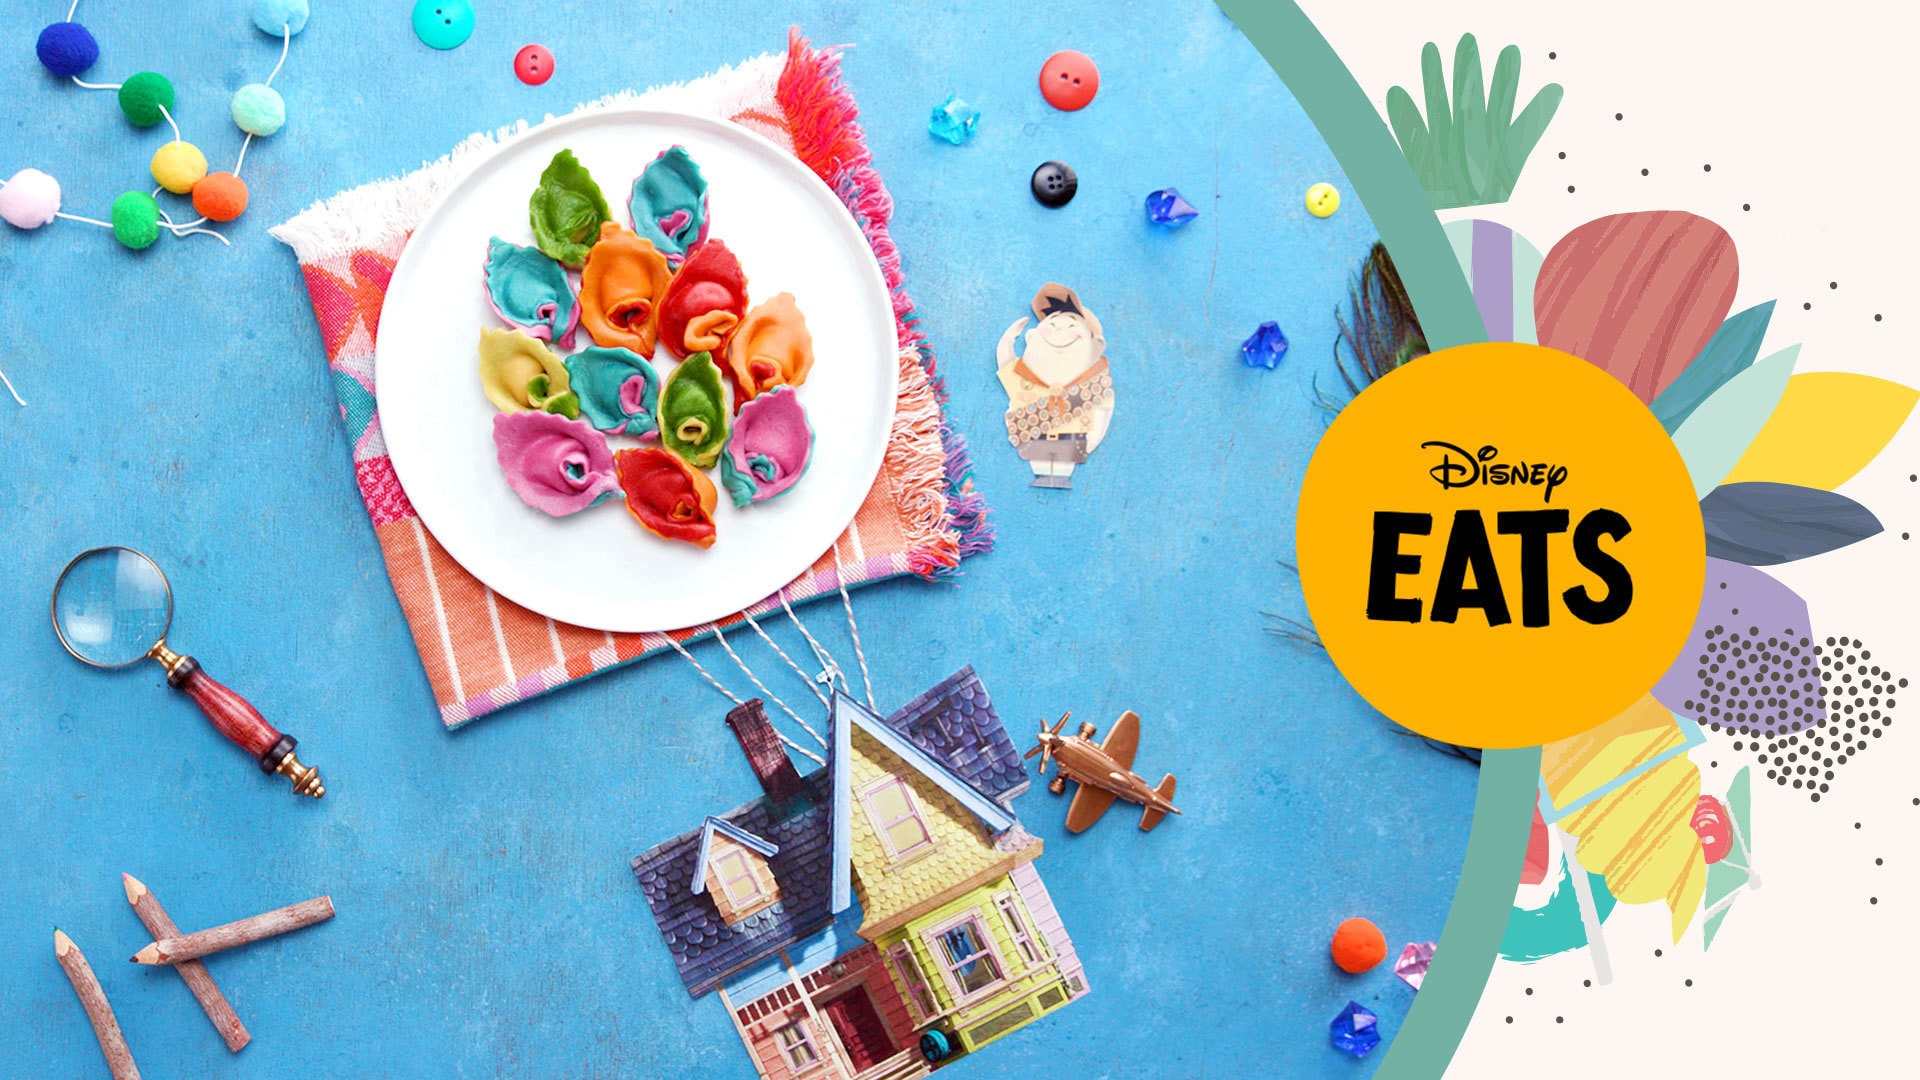 Up Pasta Balloons | Disney Eats